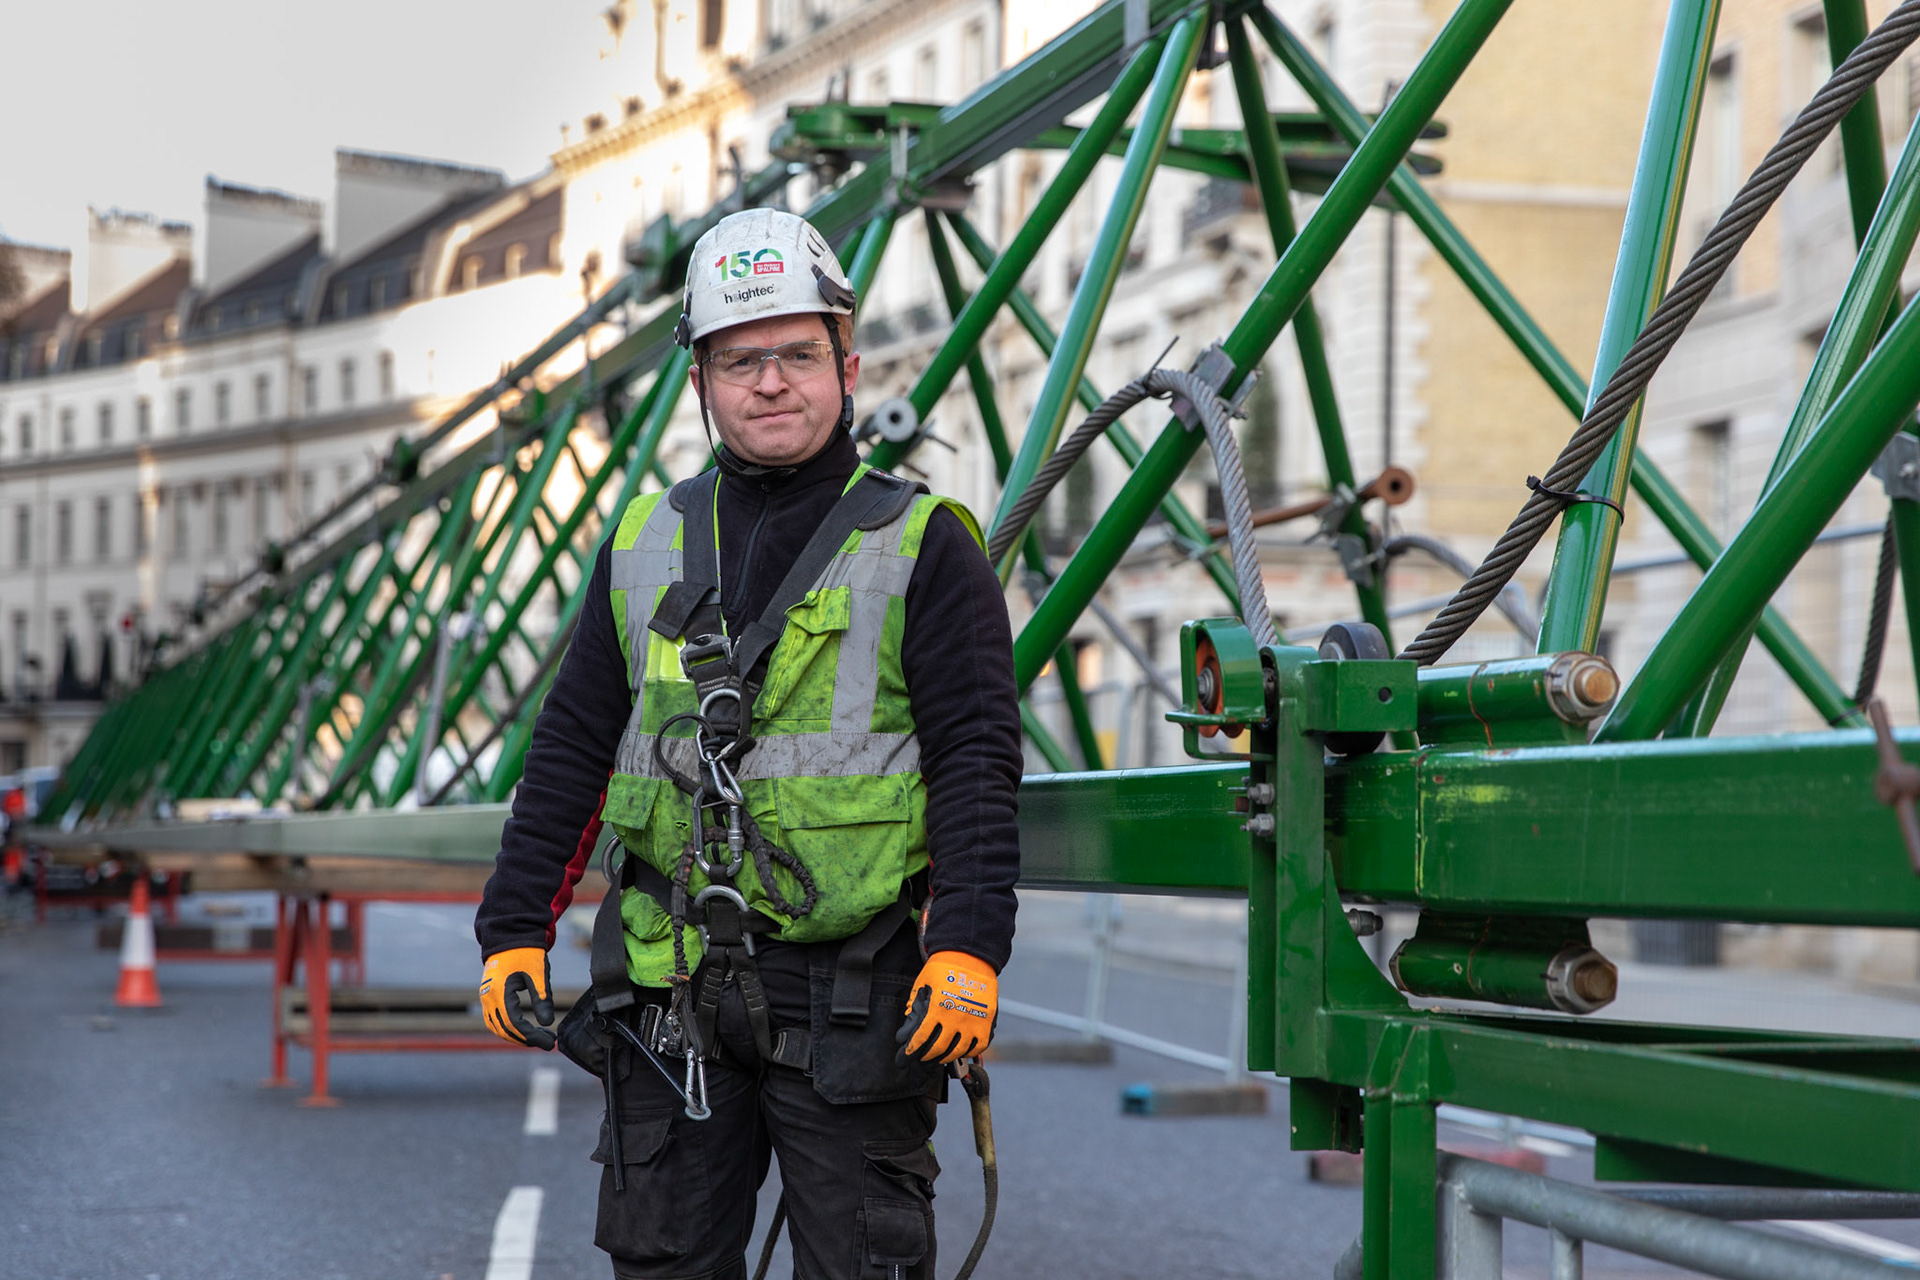 Industrial Photography Portrait of Worker onsite look straight at camera